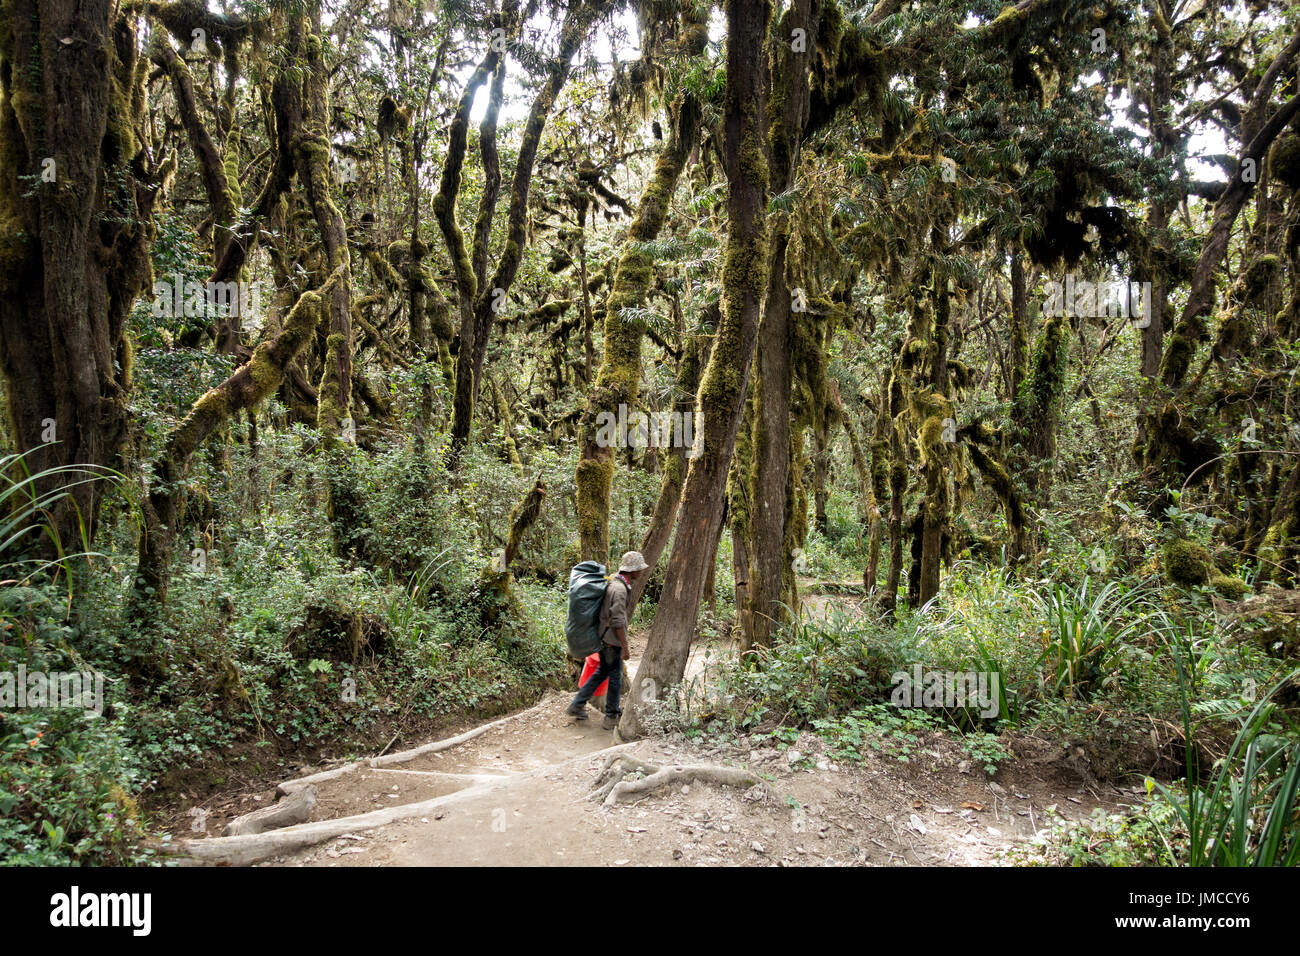 Porter descends trail through rainforest below Mweka Camp, Kilimanjaro National Park, Tanzania Stock Photo